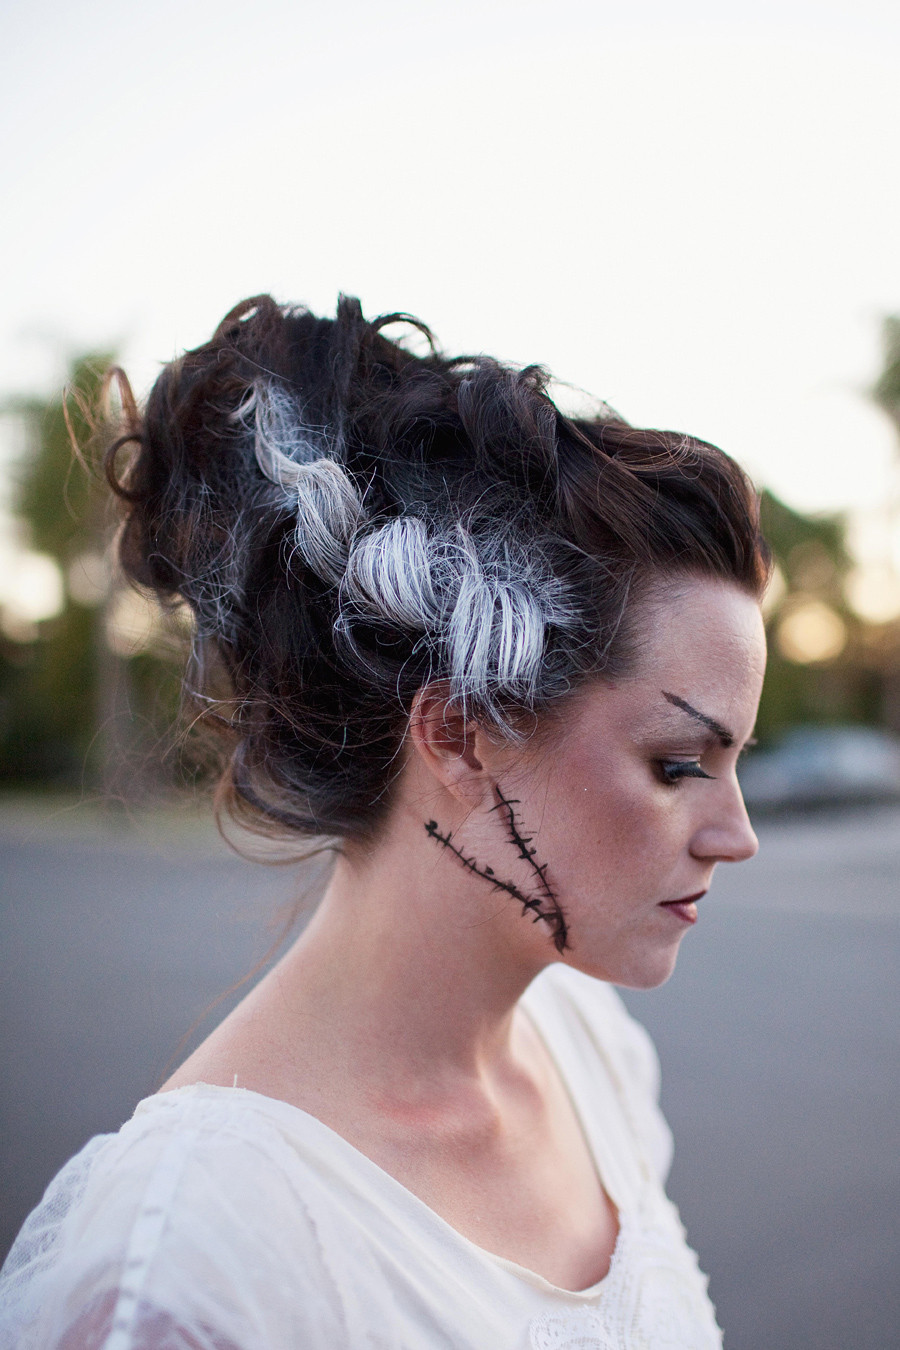 Best ideas about Bride Of Frankenstein Costume DIY . Save or Pin TELL MONSTER FAMILY COSTUME DIY Tell Love and PartyTell Now.